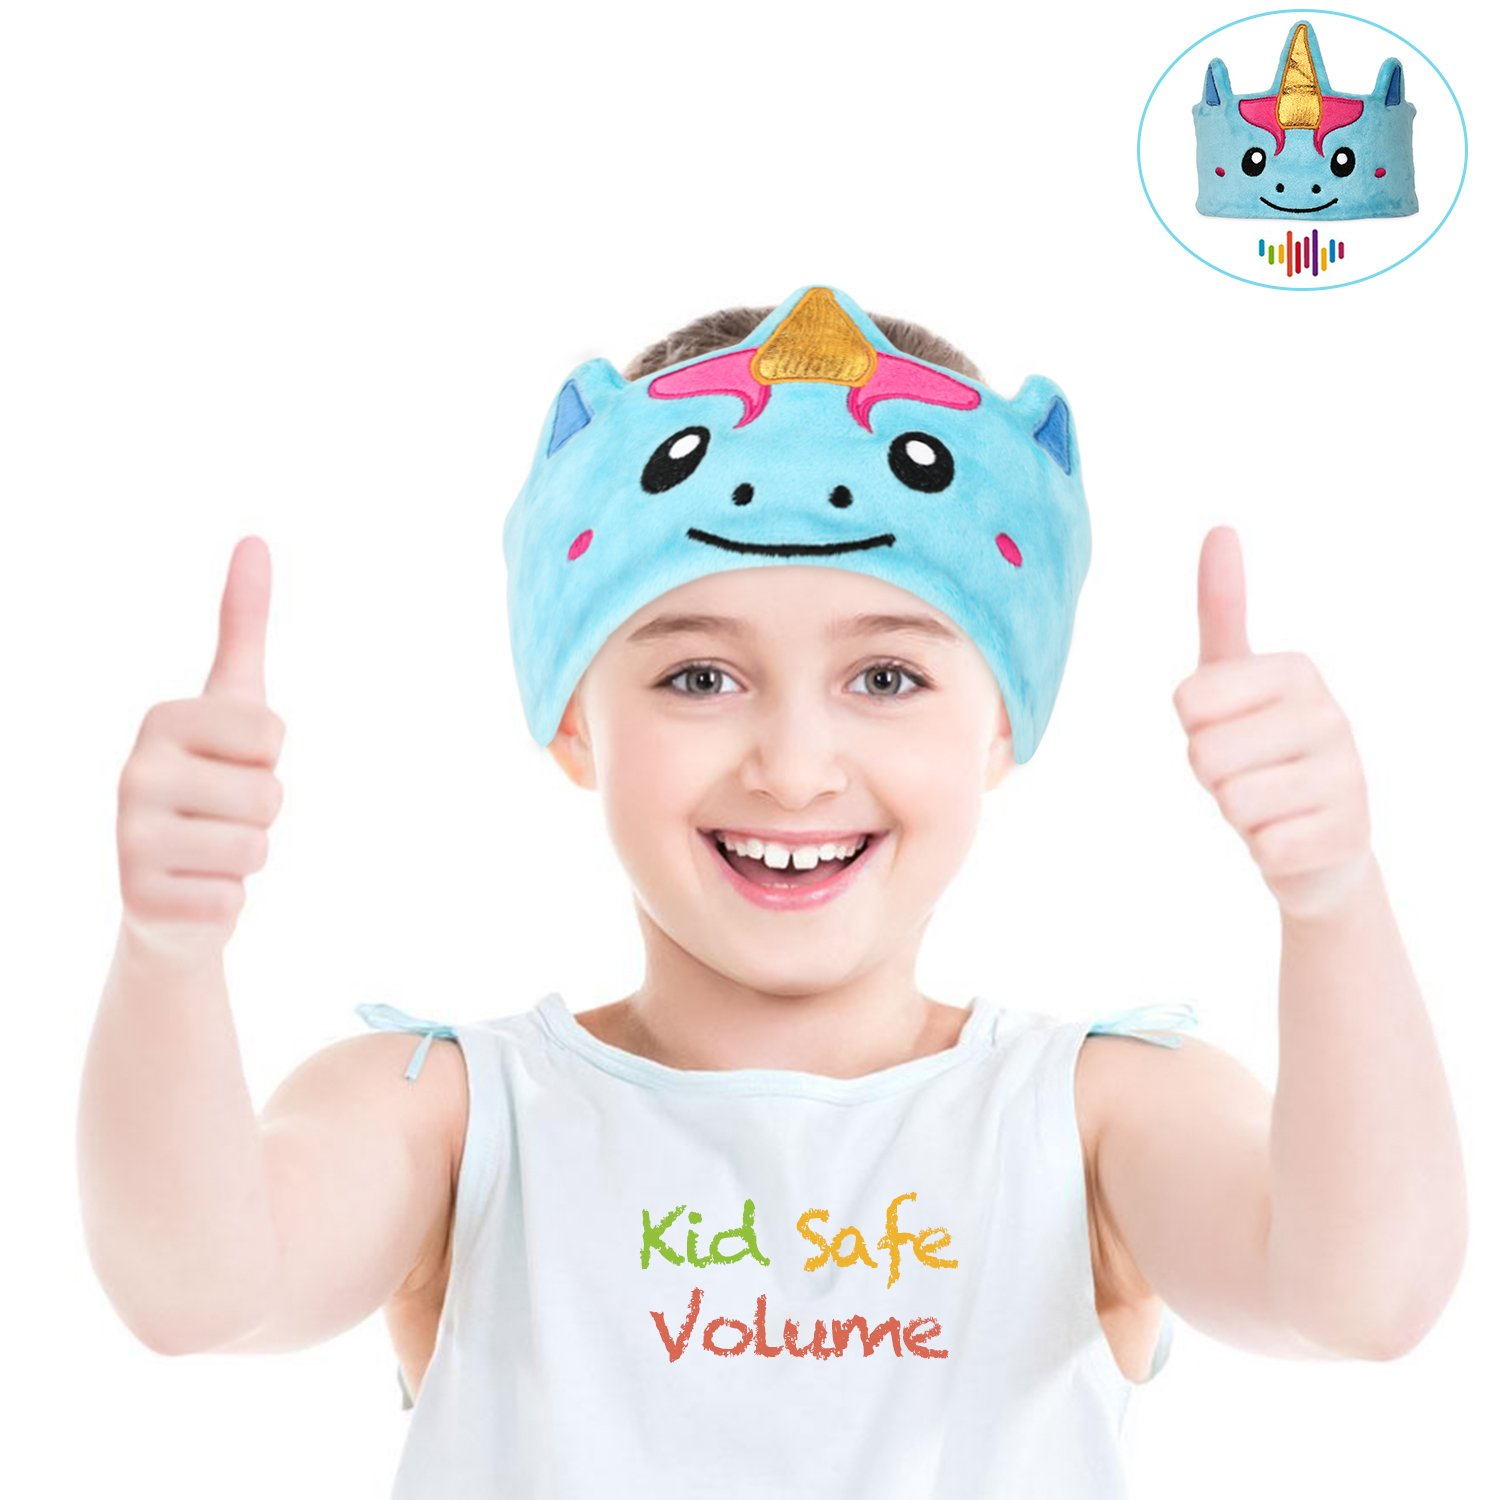 Satauko Kids headphones, Soft Fleece Unicorn Headband with Wired Headphones for Toddler, 85dB Volume Limiting for Children Headphones with Microphone, 3.5mm Aux Jack for iPad, Computers